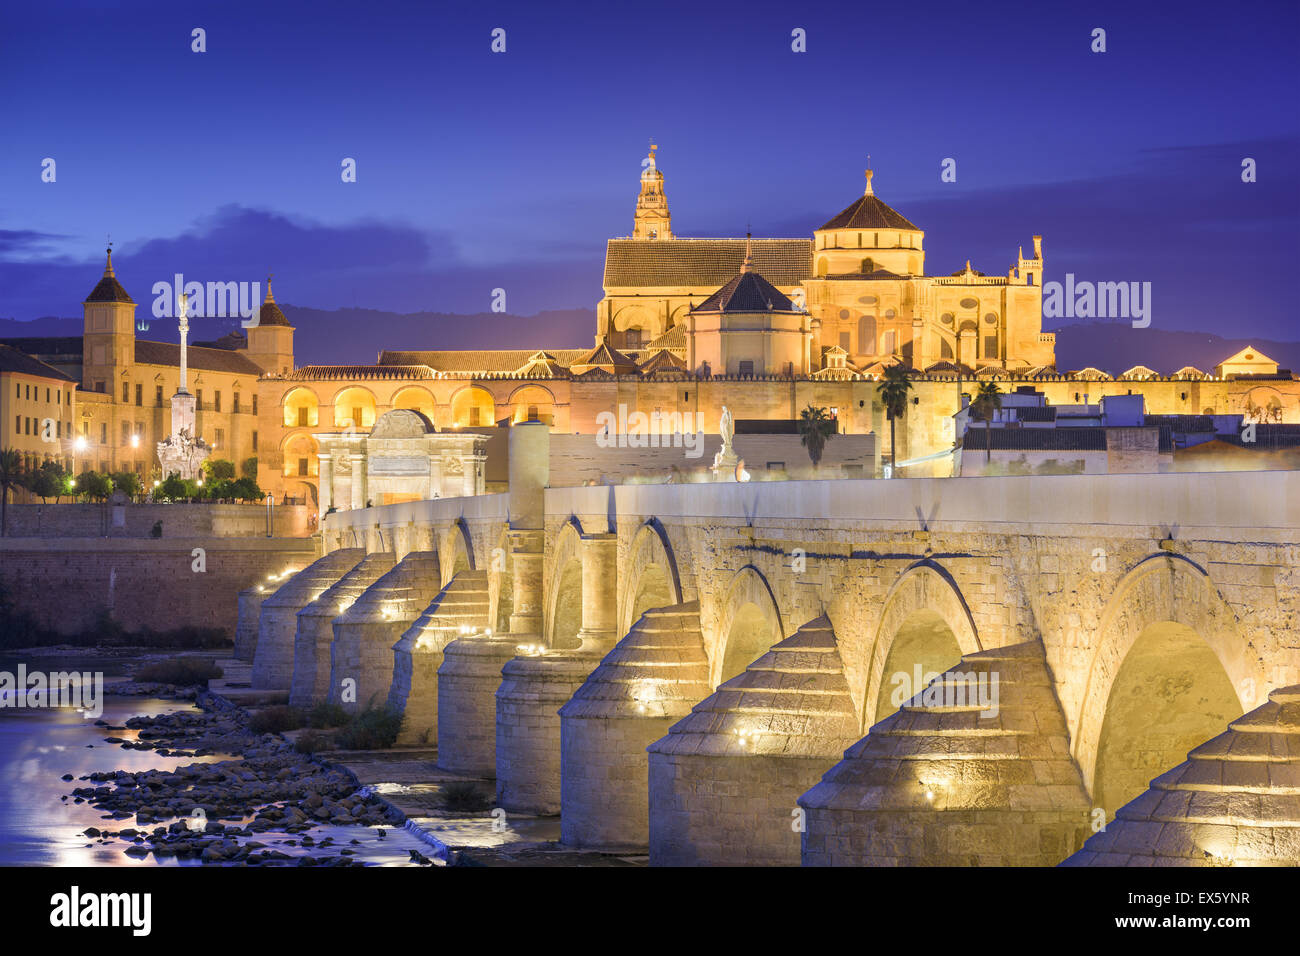 Cordoba, Spain at the Mosque-Cathedral and Roman Bridge. - Stock Image